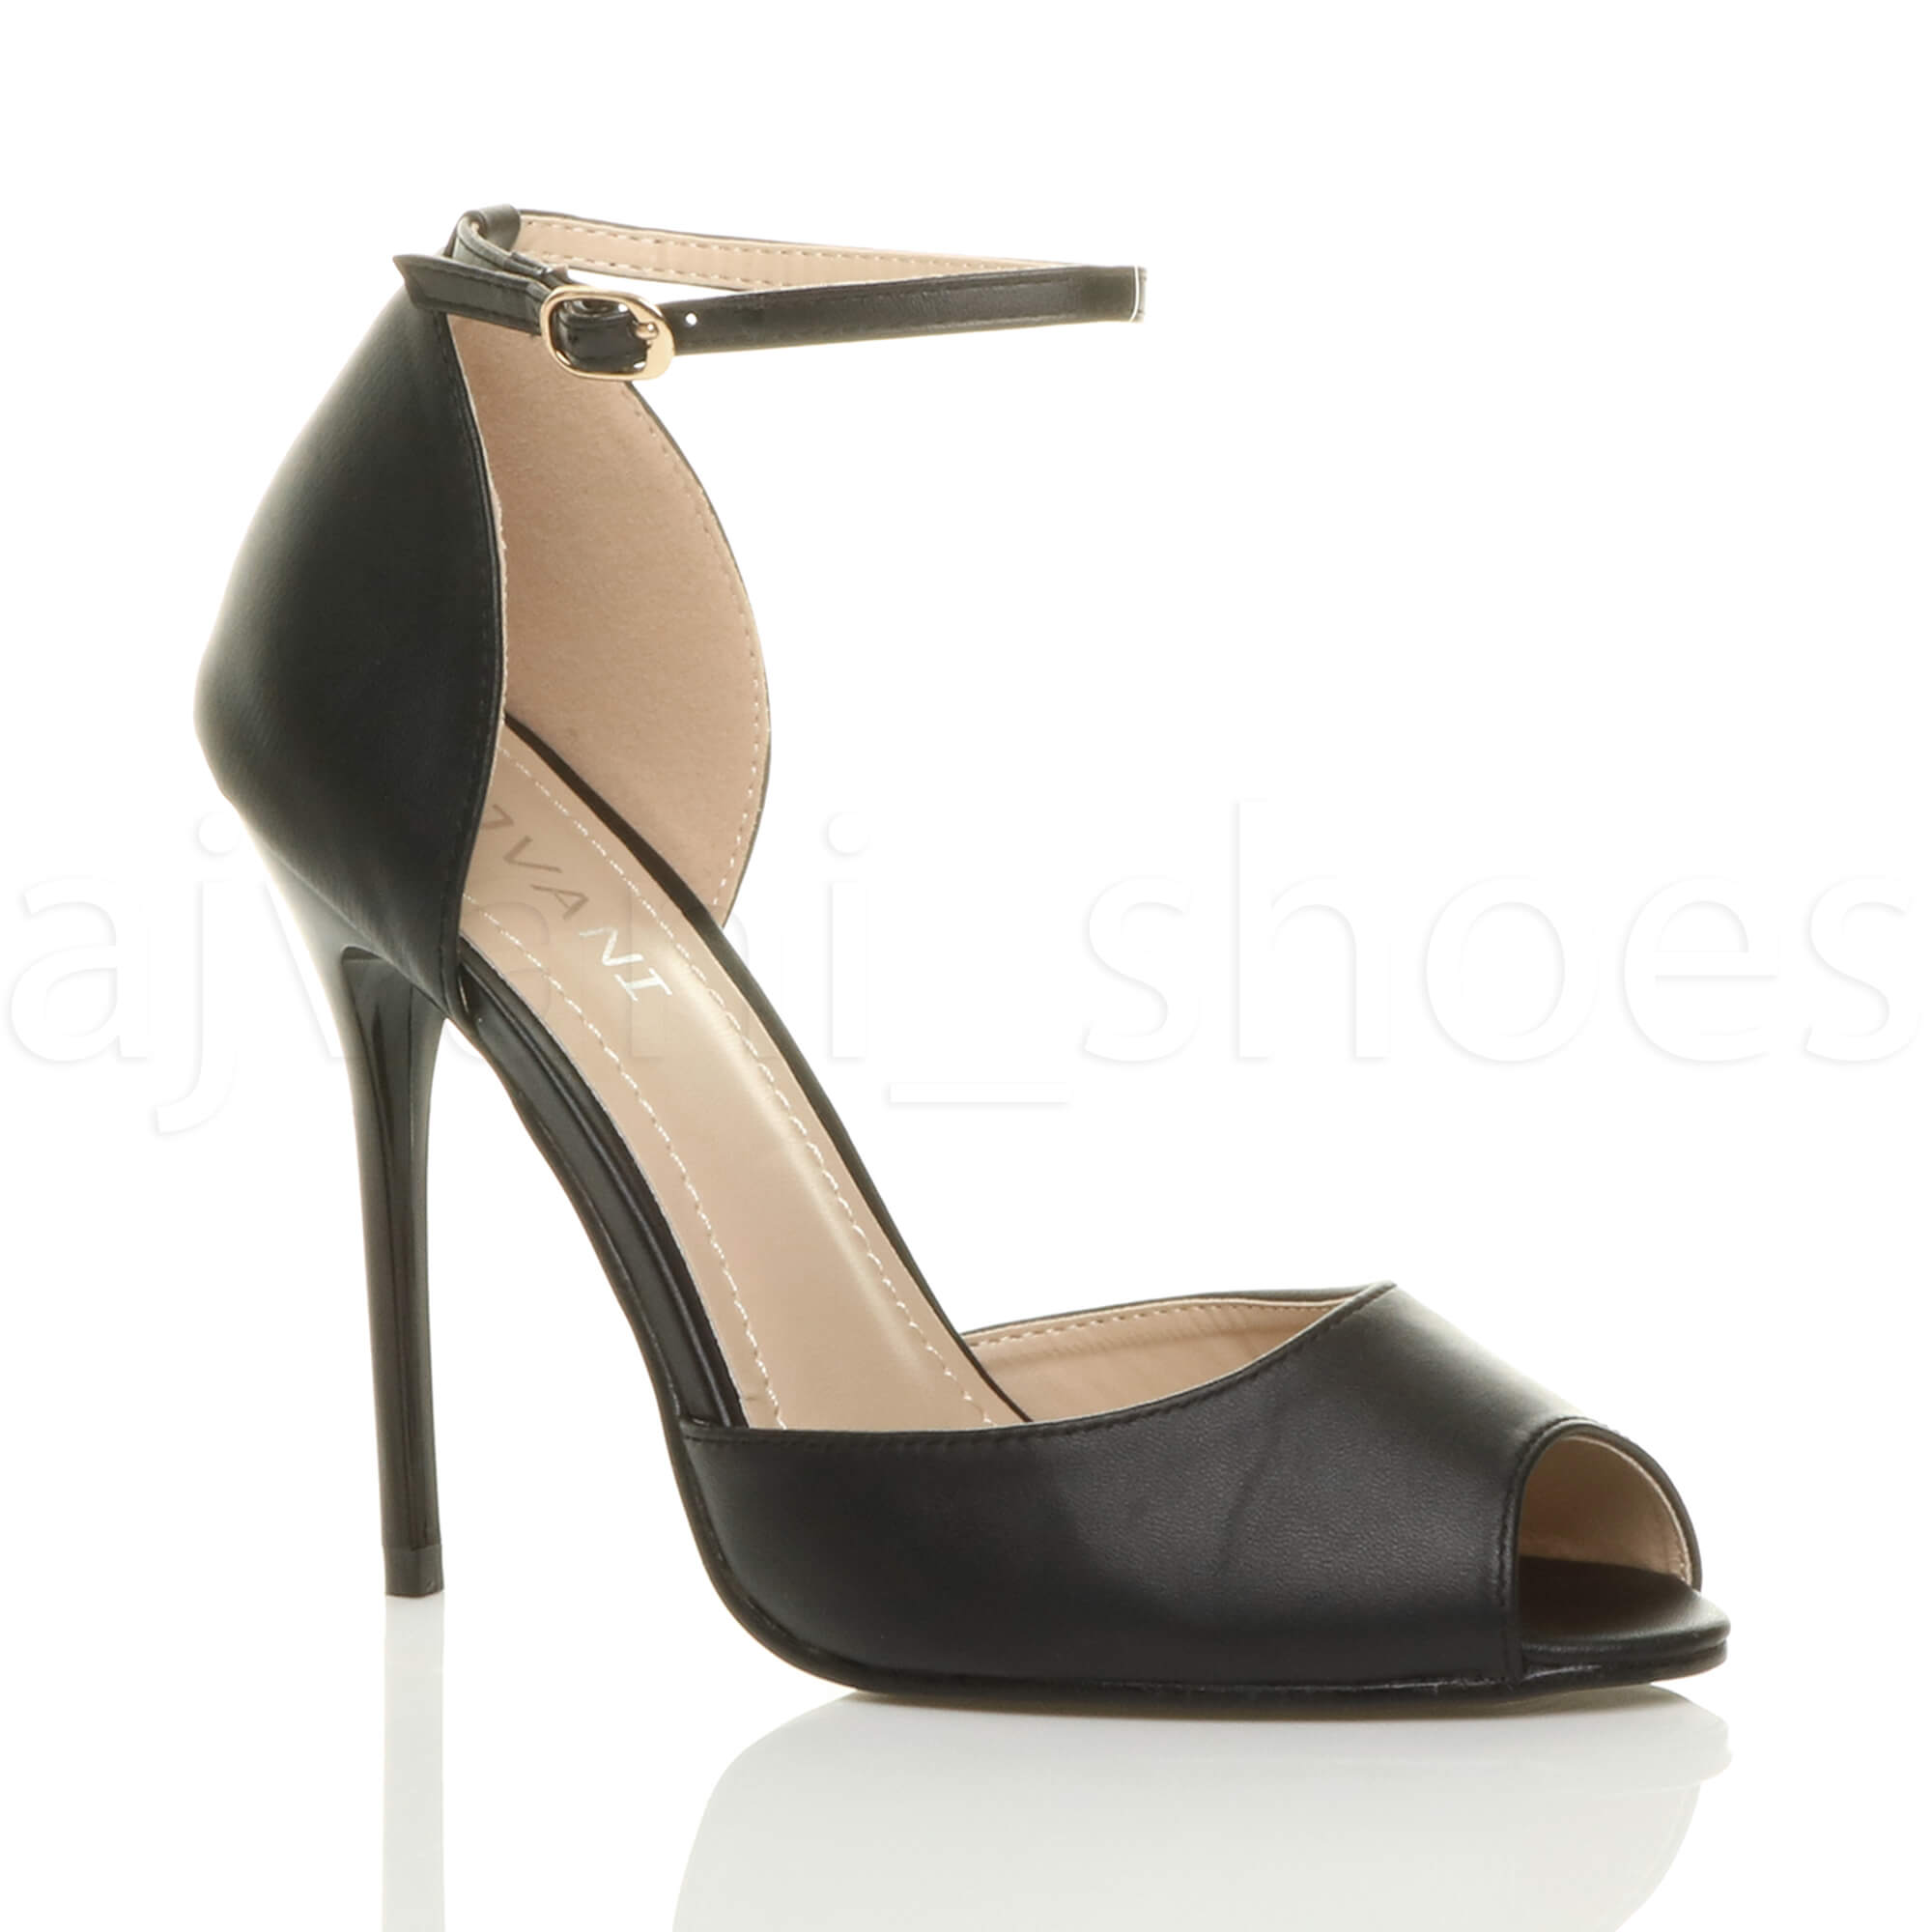 Simple NEW WOMENS STILETTO SANDALS LADIES ANKLE STRAP HIGH HEEL SANDAL SHOES